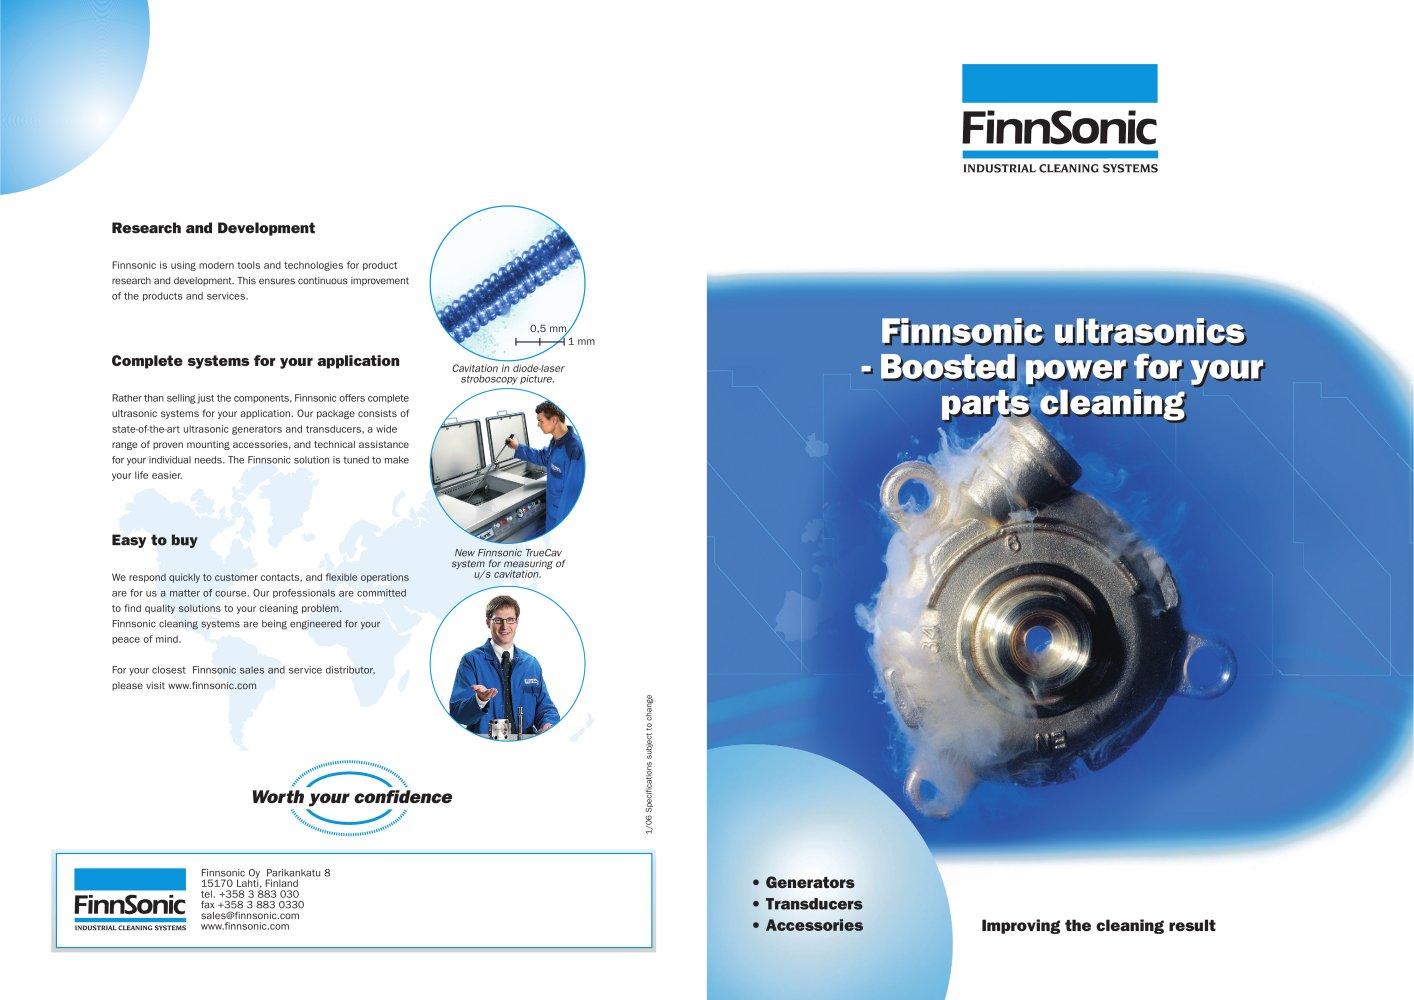 ultrasonic components for industrial cleaning finnsonic pdf ultrasonic components for industrial cleaning 1 2 pages